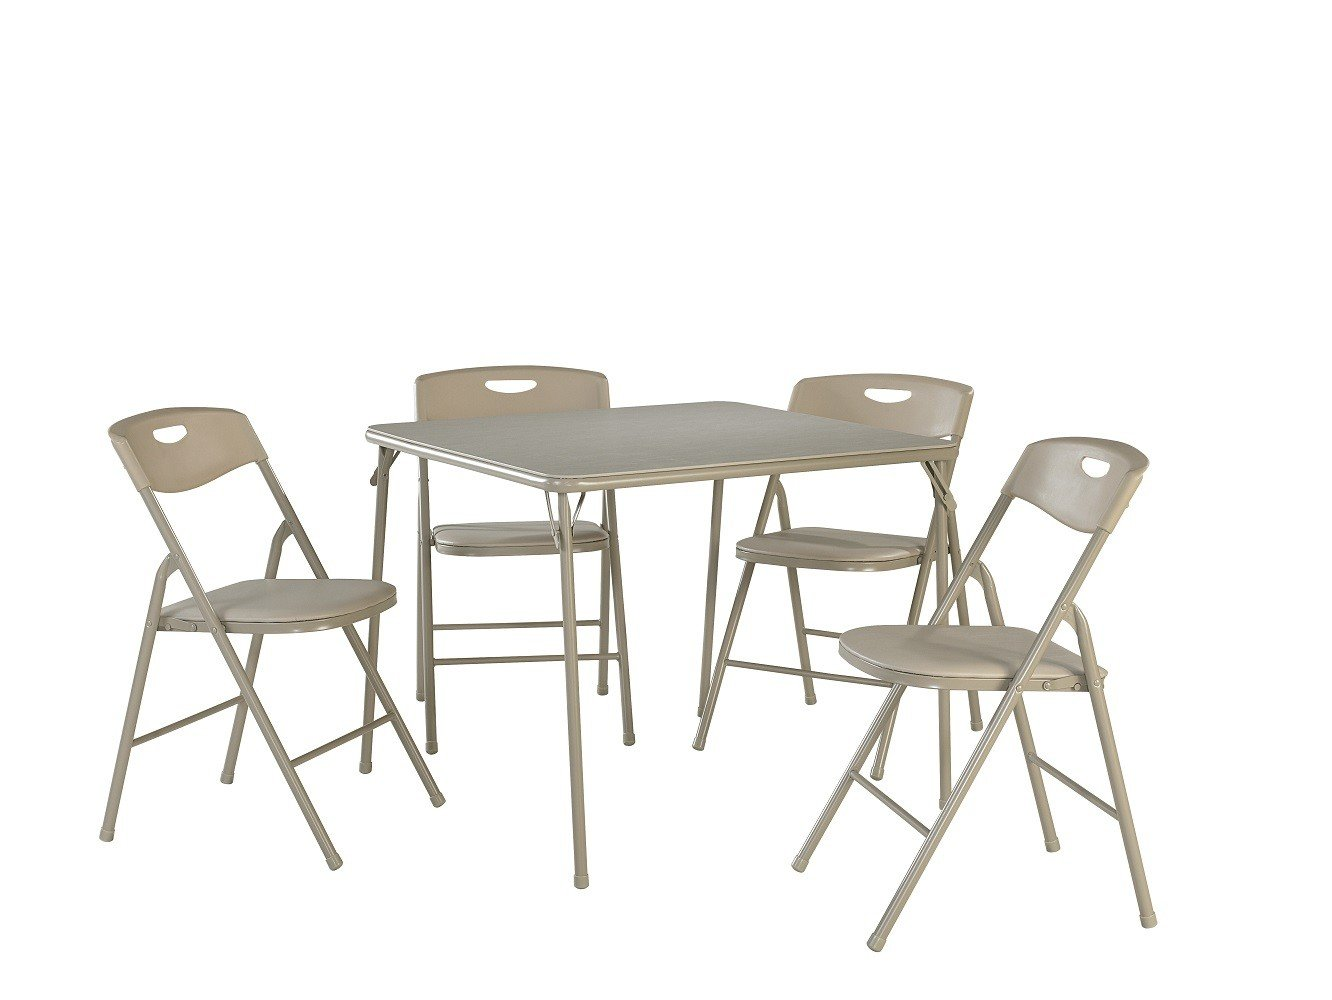 Cosco 37557ANTE 5-Piece Folding Table and Chair Set, Antique Linen by Cosco